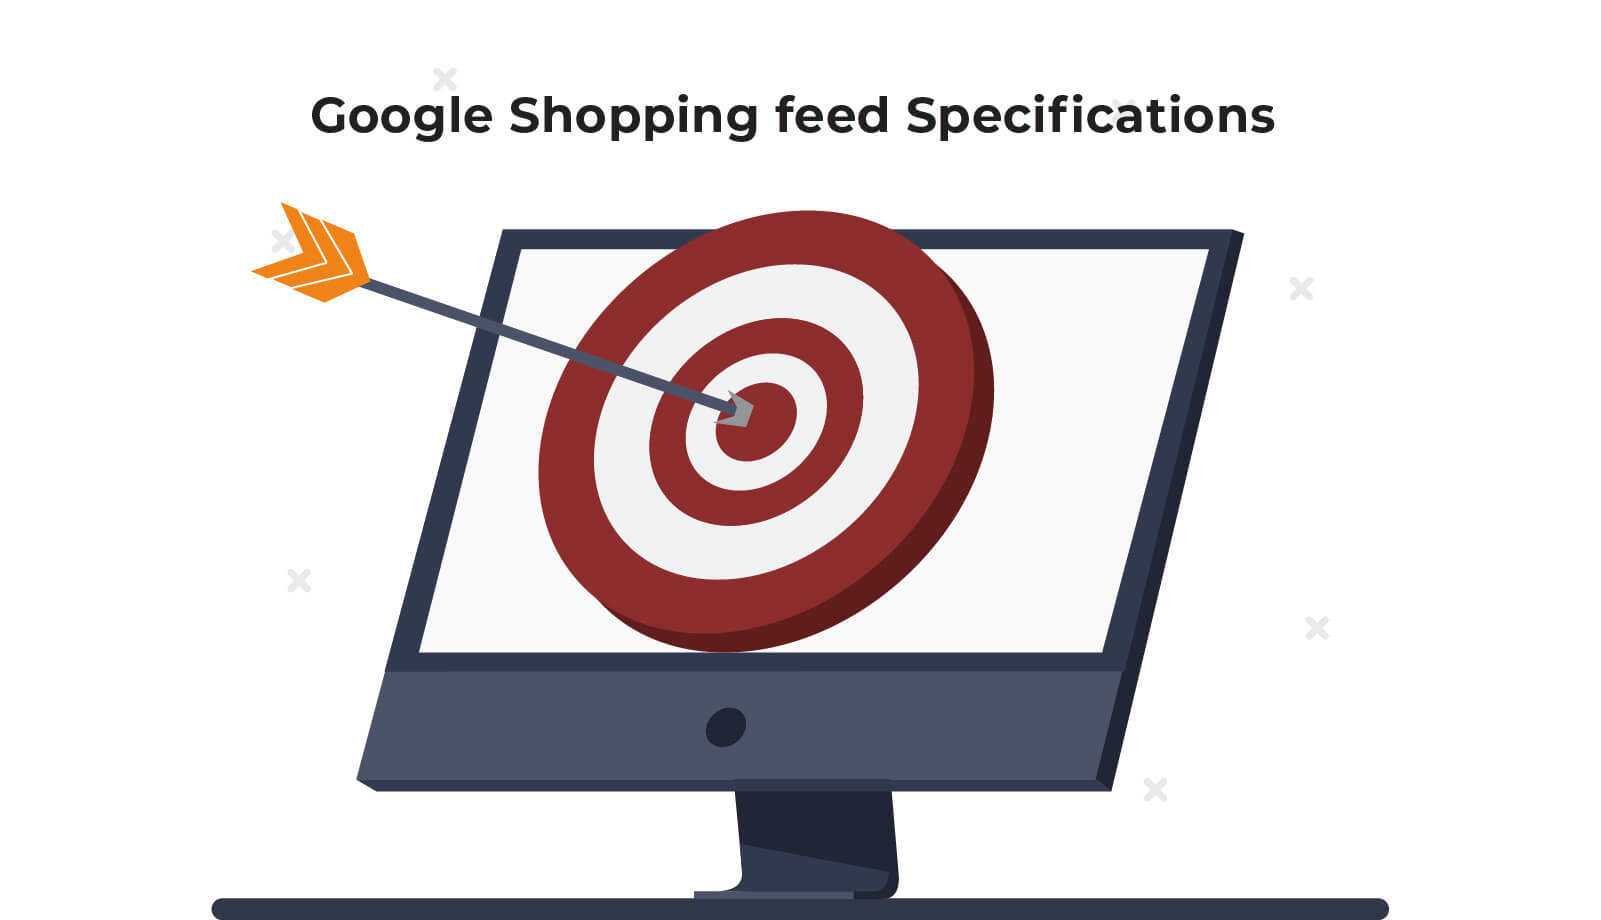 Google Shopping feed Specifications